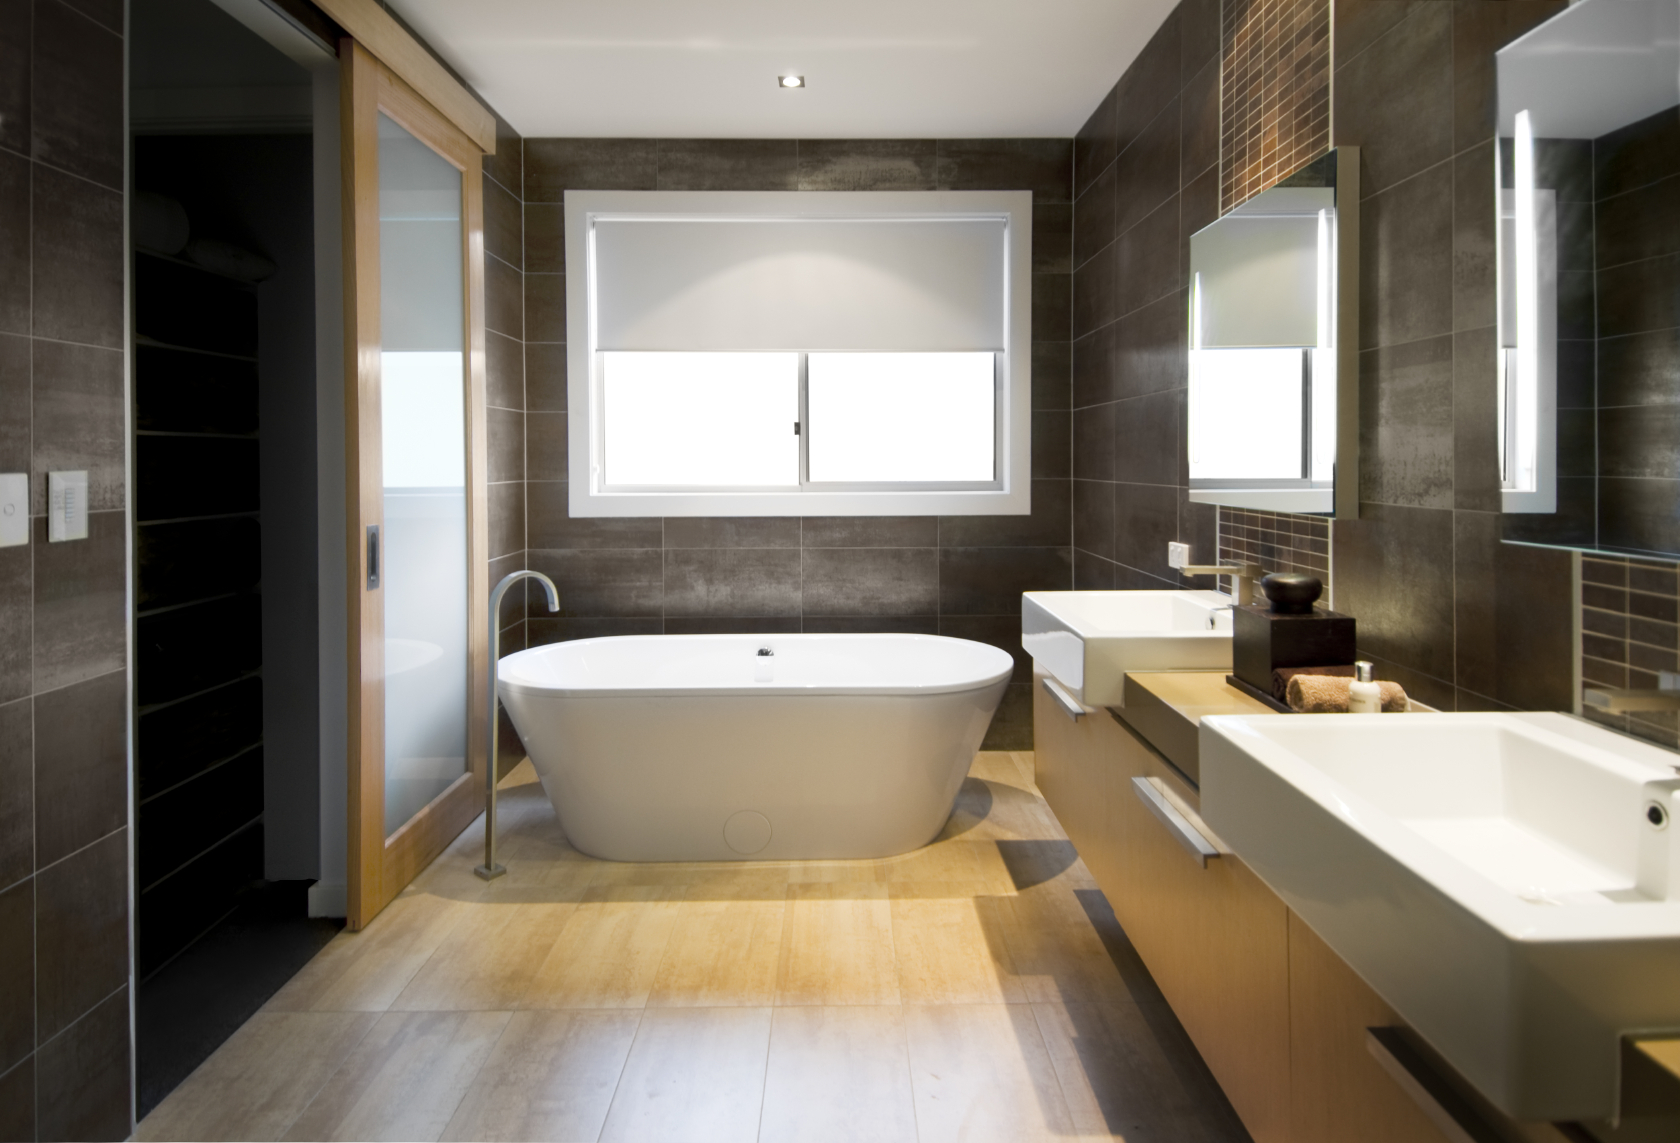 bathroom modern by design pin fedorov alexander architect